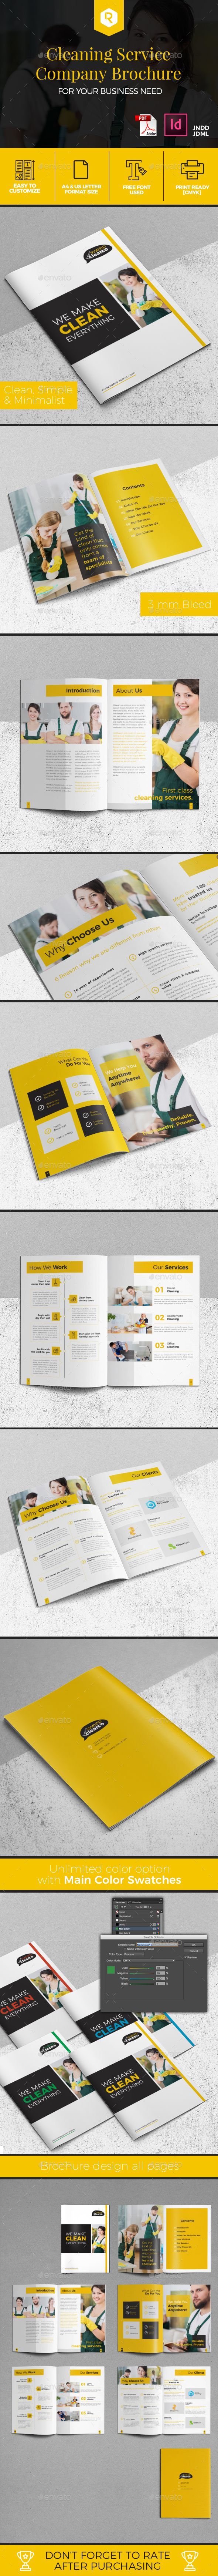 Cleaning Service Company Brochure — InDesign INDD #business #apartment cleaning • Available here → https://graphicriver.net/item/cleaning-service-company-brochure/19578071?ref=pxcr